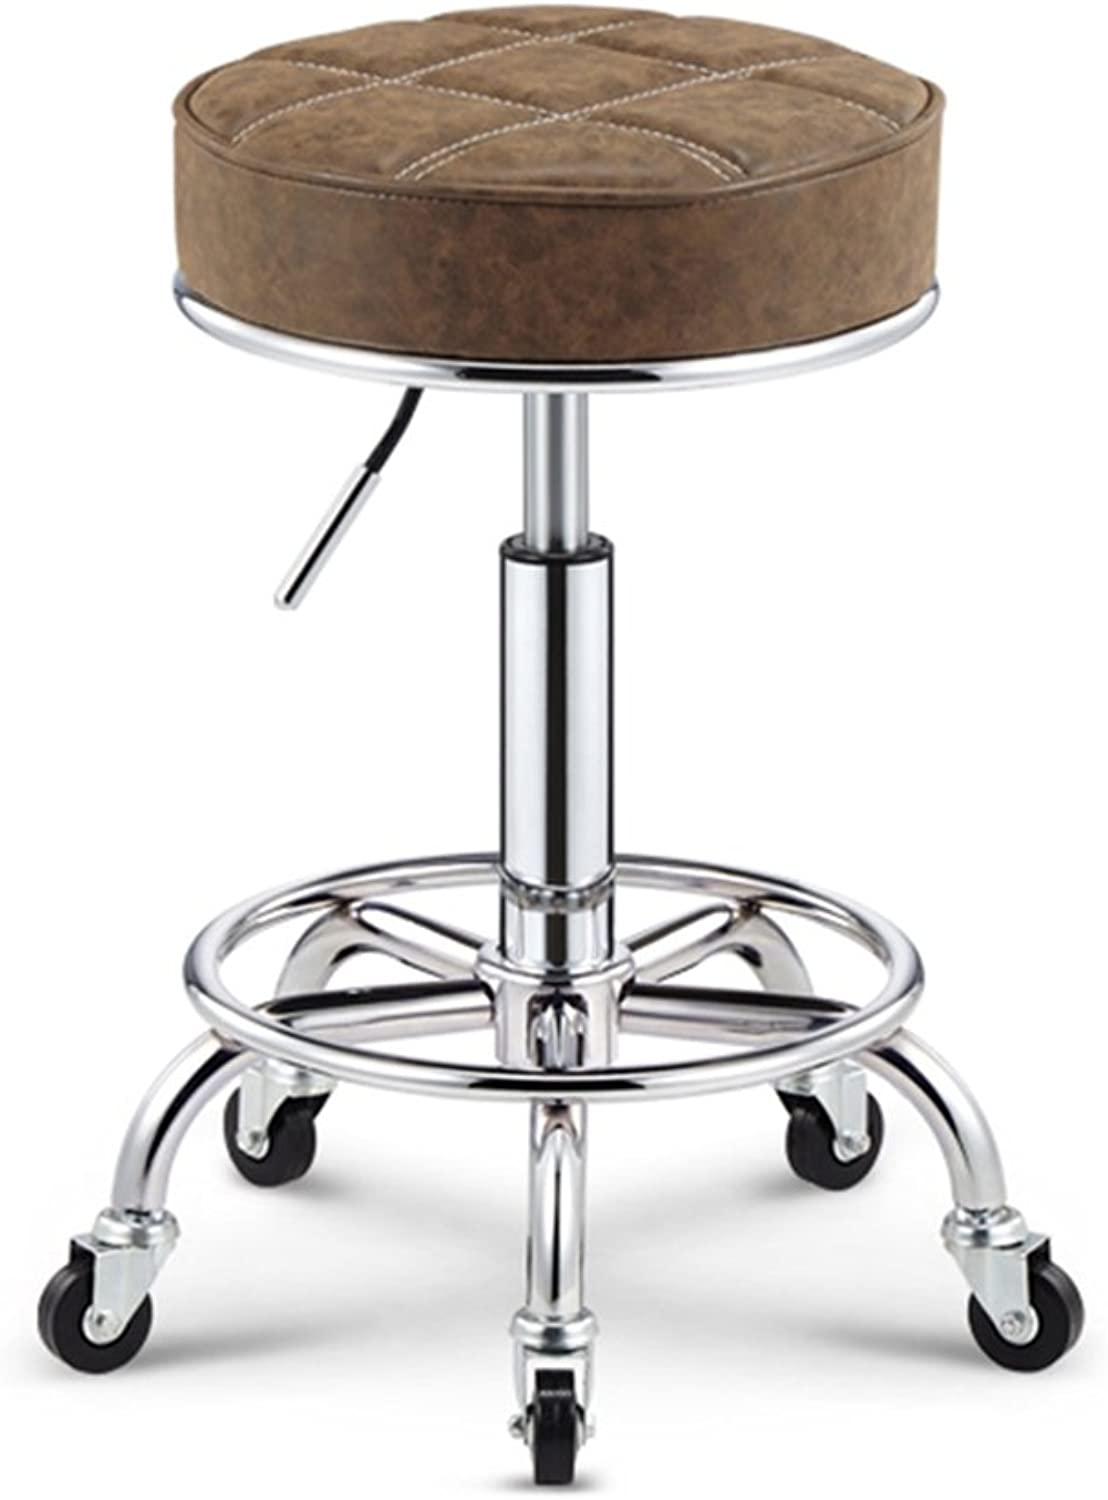 Cowhide redary Anti-Explosion Chair Cash Register Lift Bar Stool high Stools Stool sit 50-64.5cm -by TIANTA